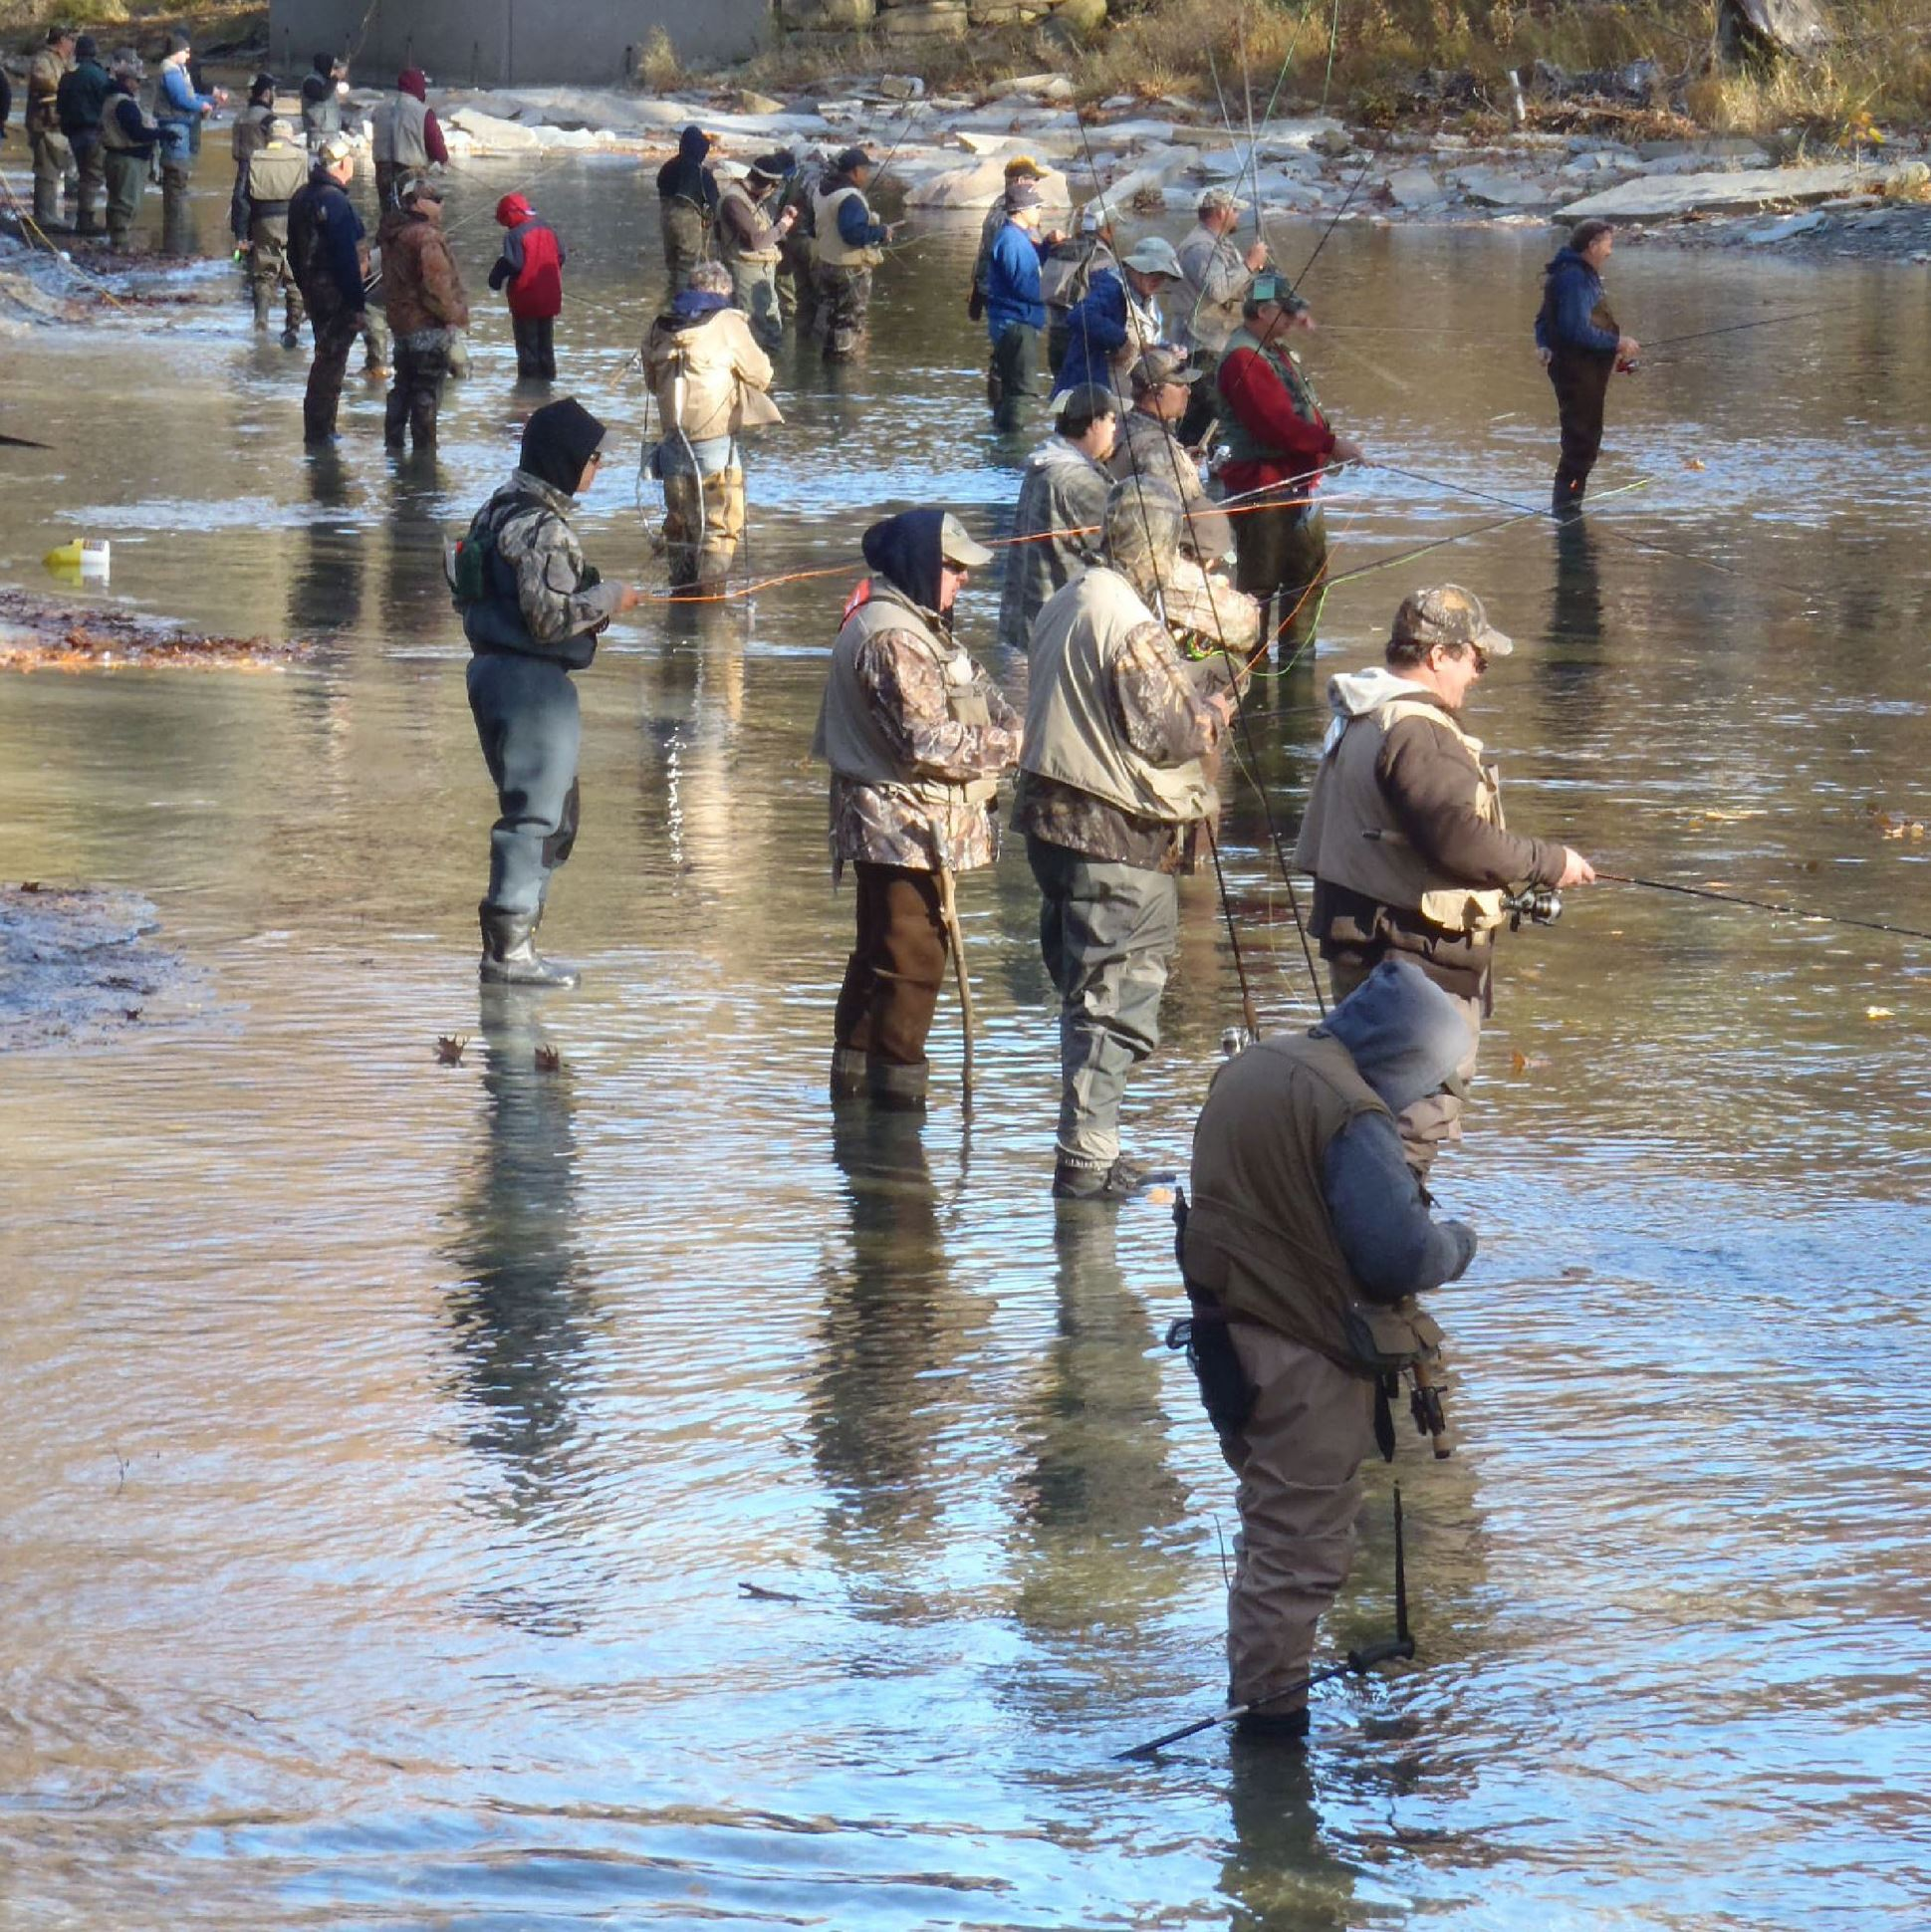 Inland angling catching on in area pittsburgh post gazette for Fishing in pittsburgh